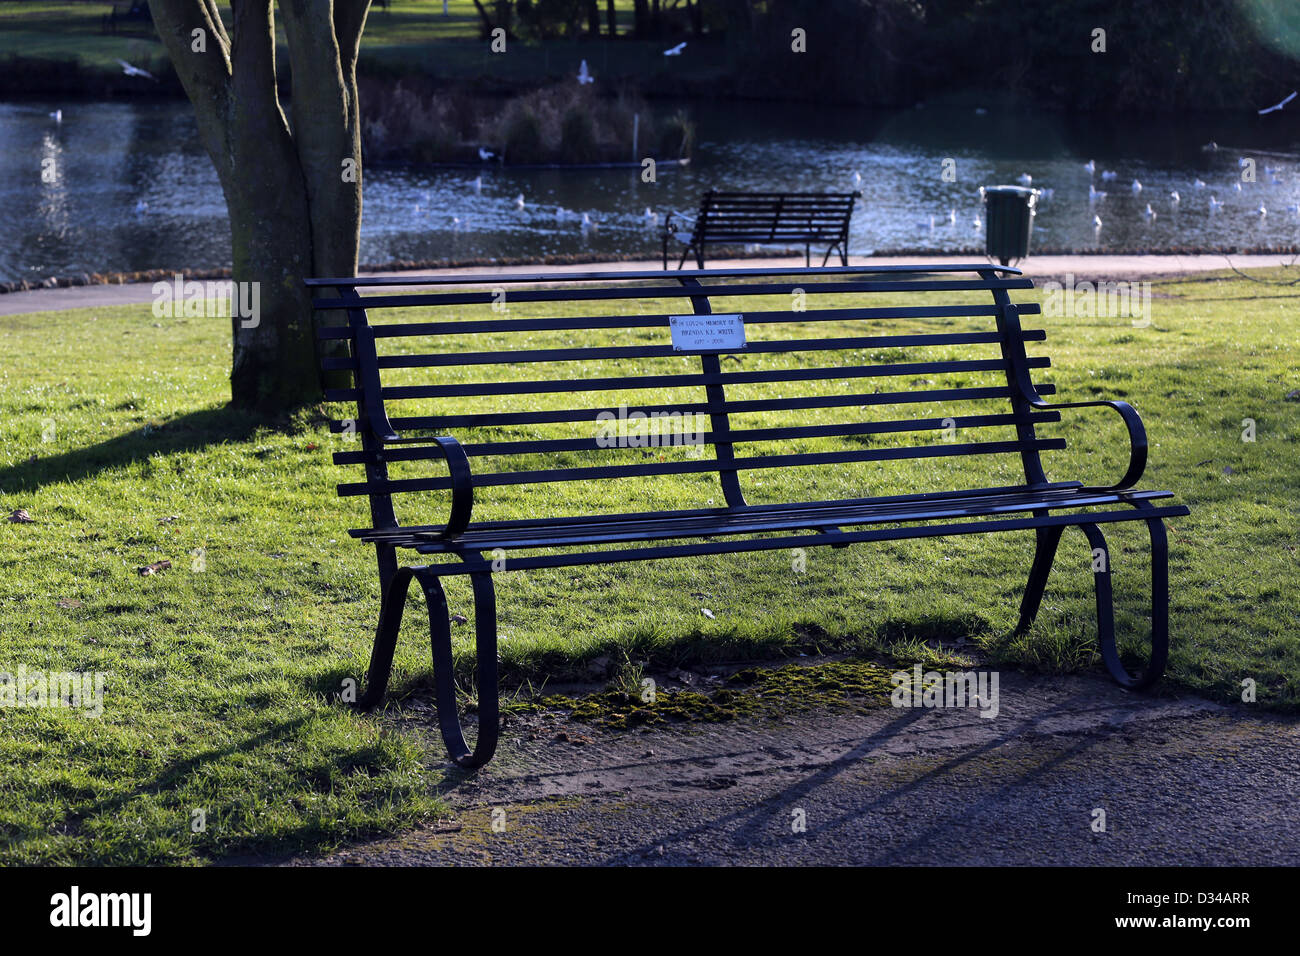 Memorial Benches By The Lake In The Pleasure Gardens Of The Pittville Pump  Room Cheltenham Gloucestershire England